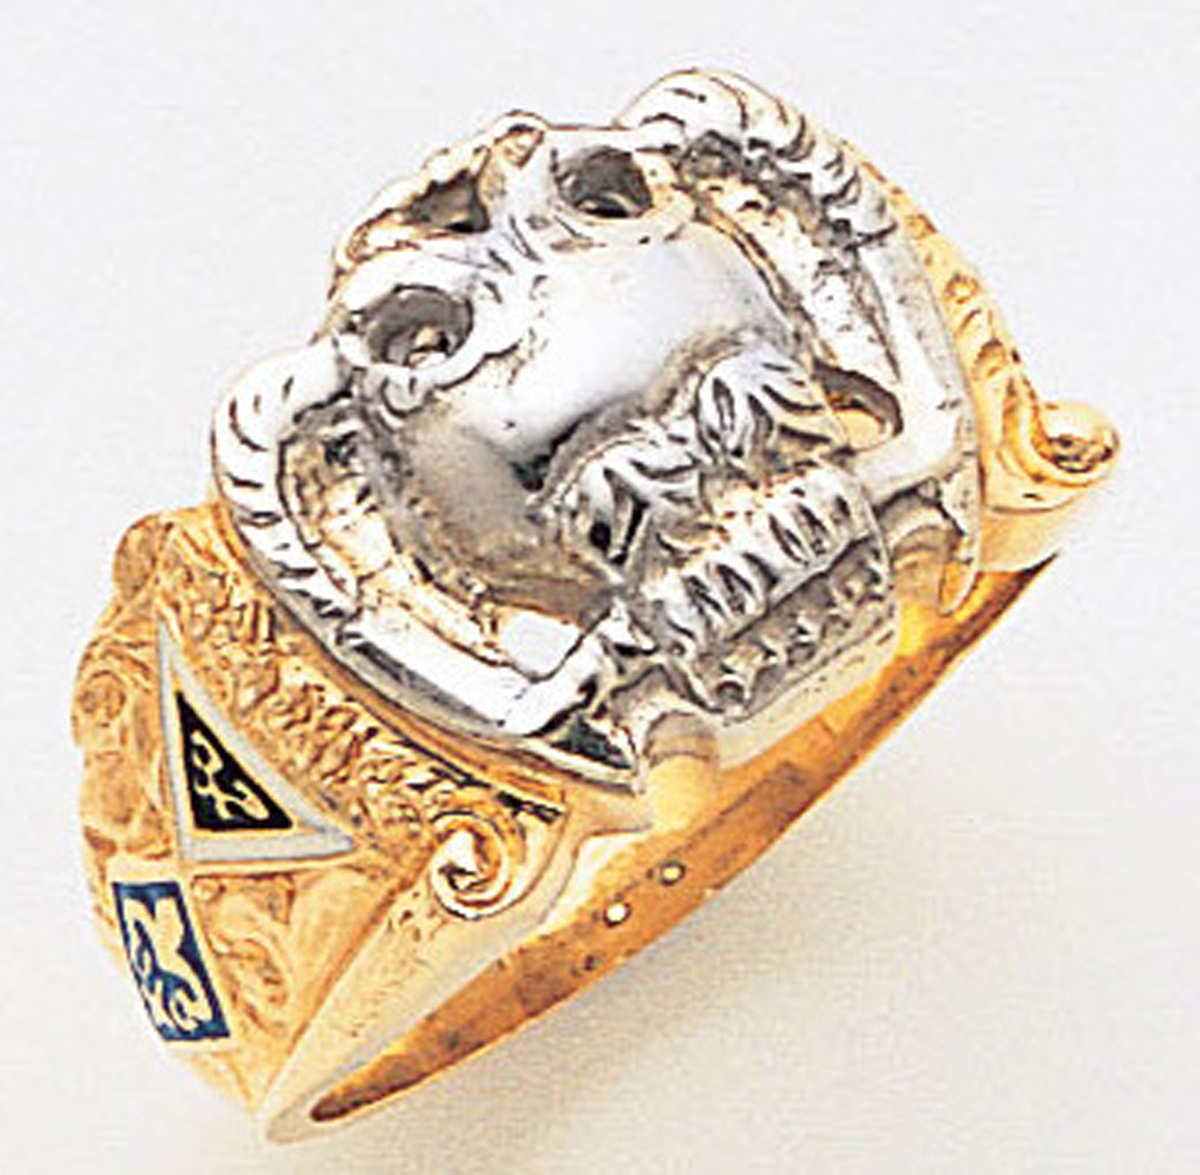 Masonic 32 Degree Scottish Rite Ring Macoy Publishing Masonic Supply 3388